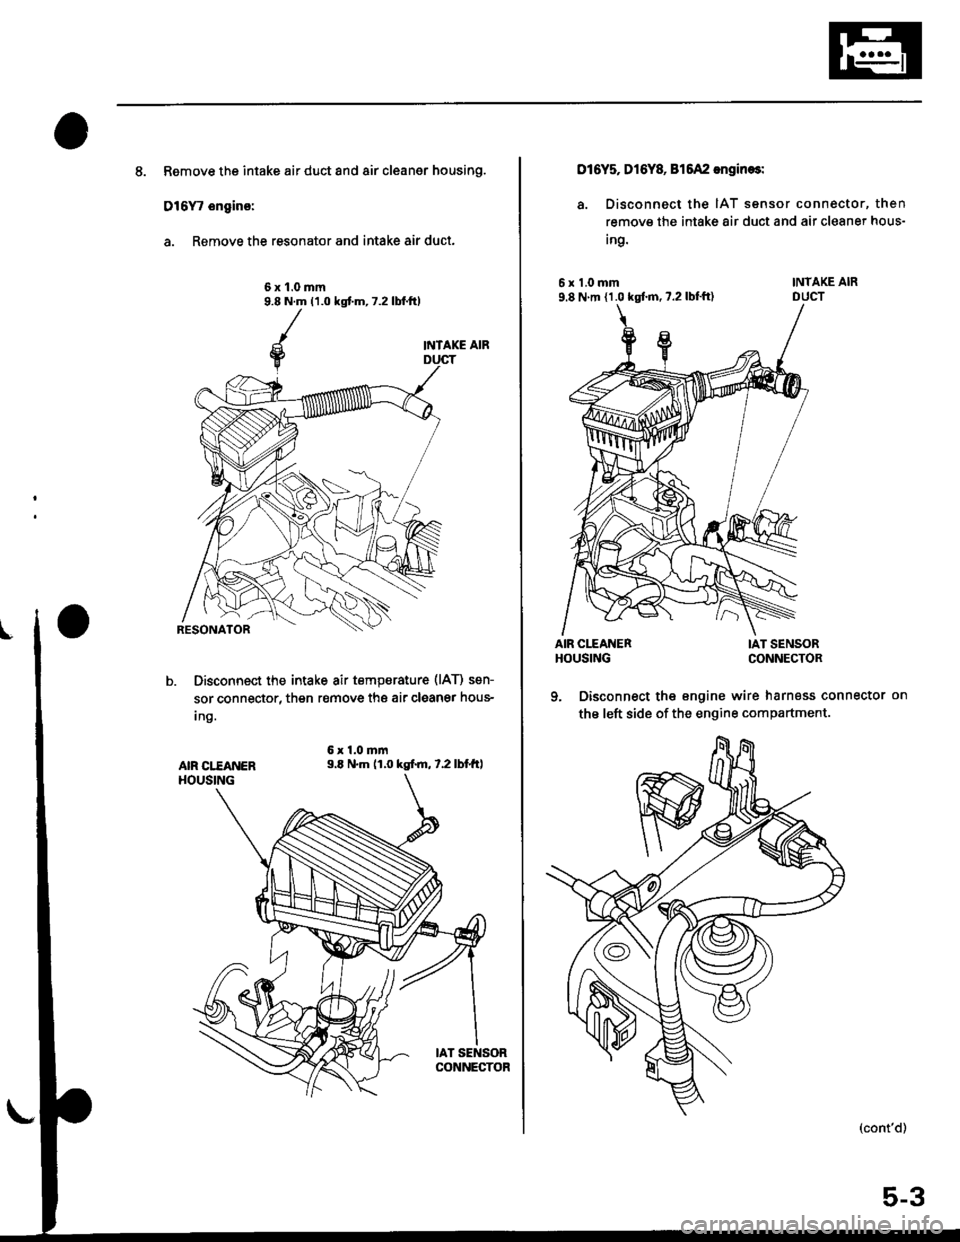 1998 Honda Accord Lx 2 3l Engine Diagram. Honda. Auto